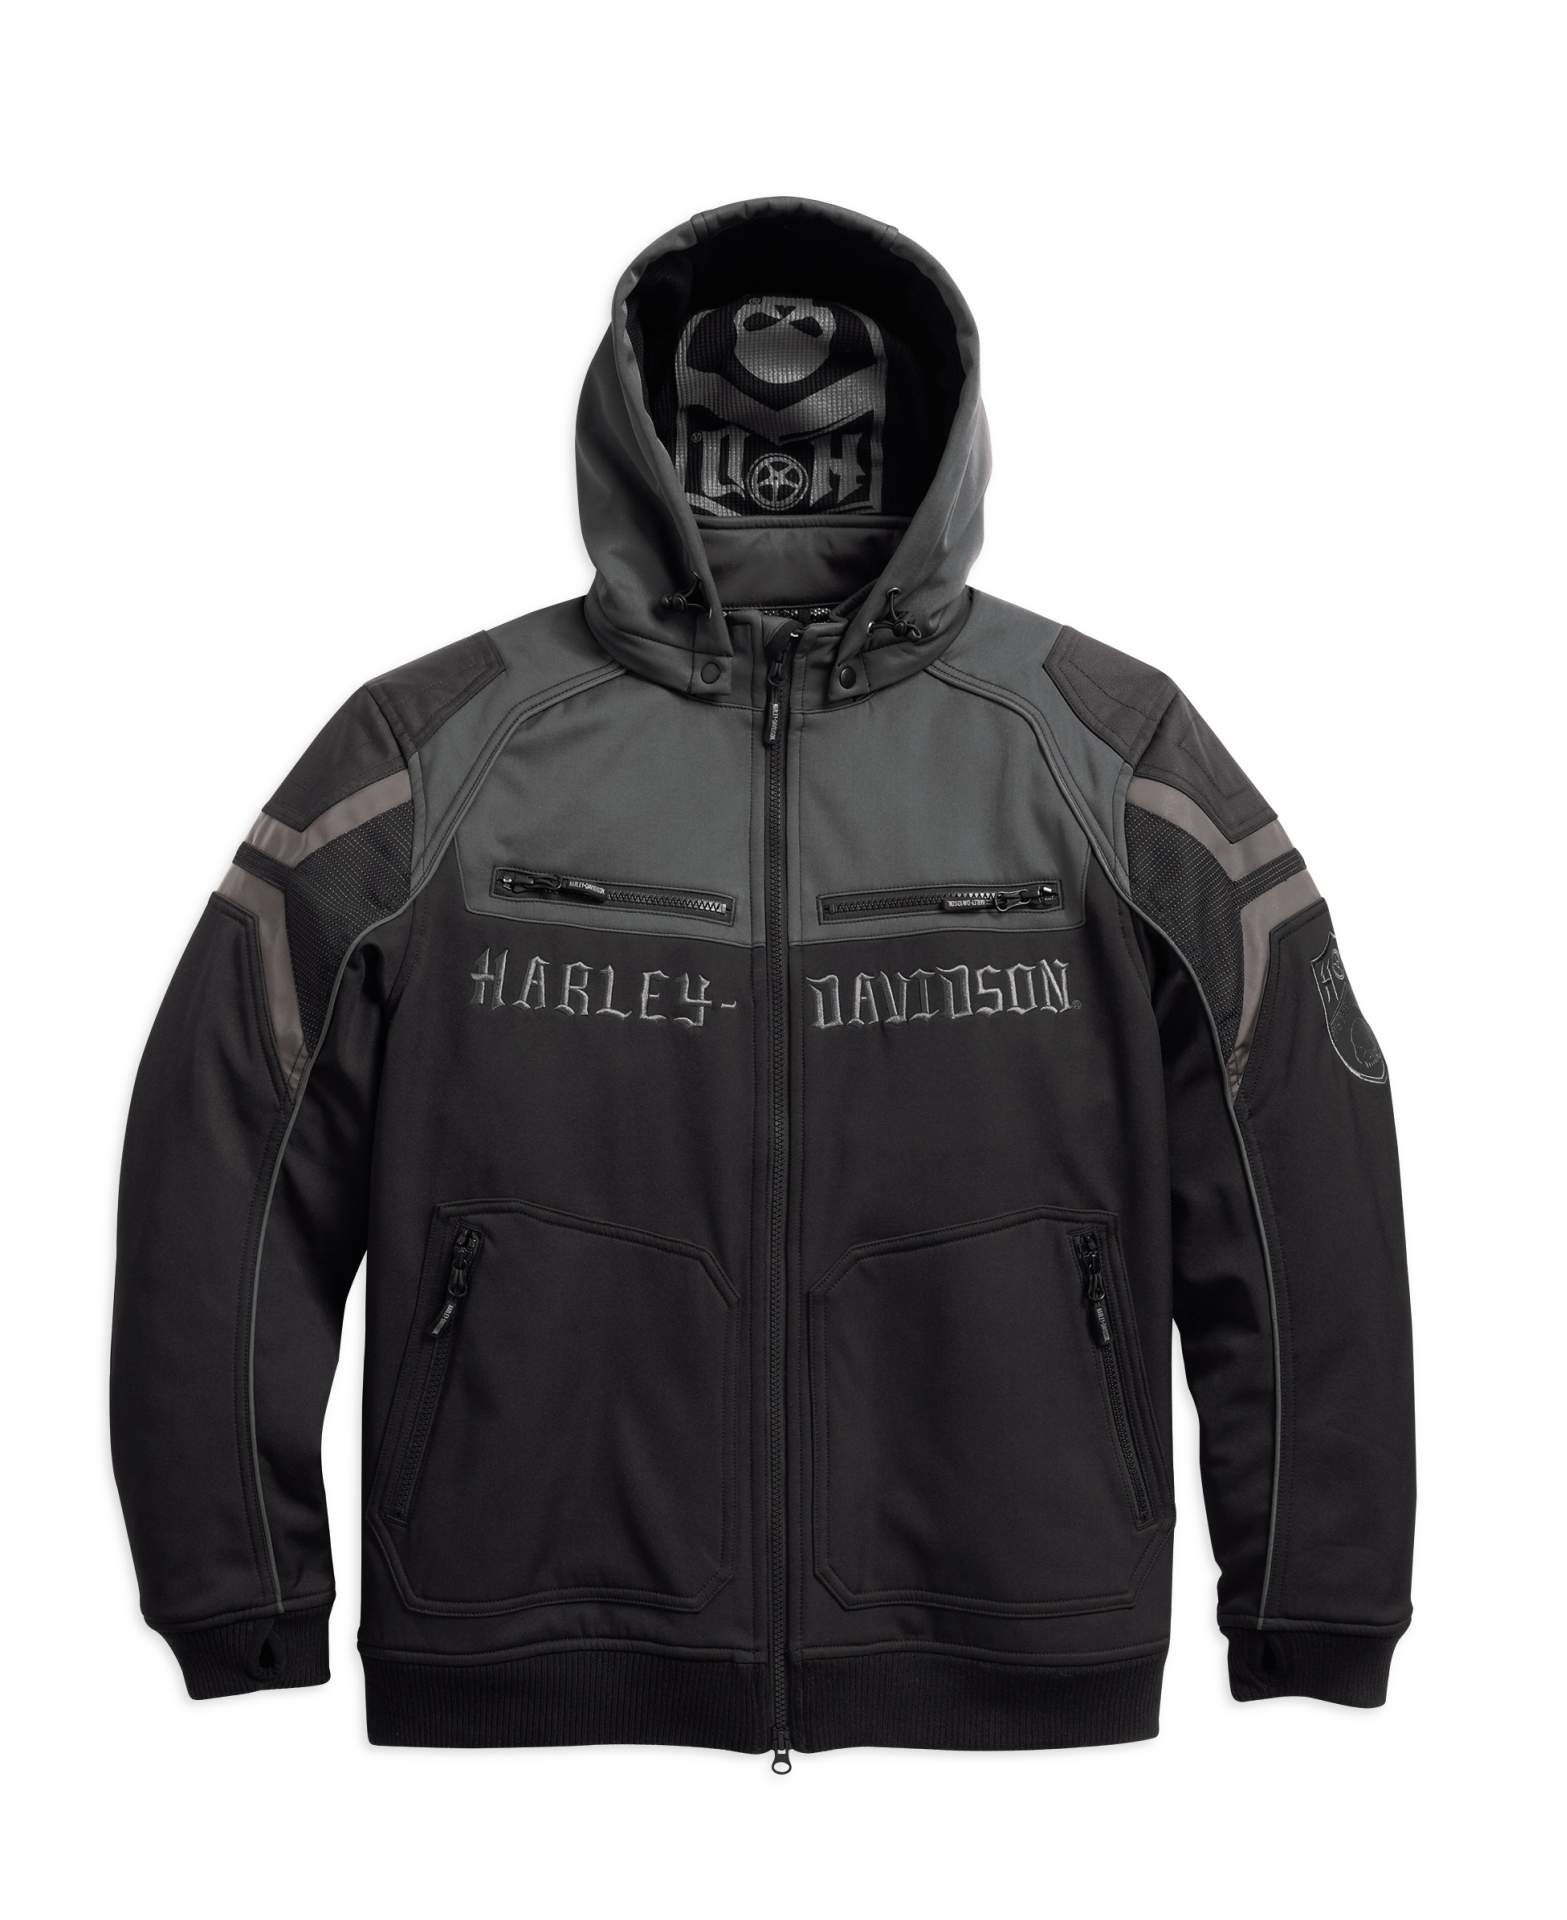 97095 16vm harley davidson scavenger jacke im thunderbike shop. Black Bedroom Furniture Sets. Home Design Ideas